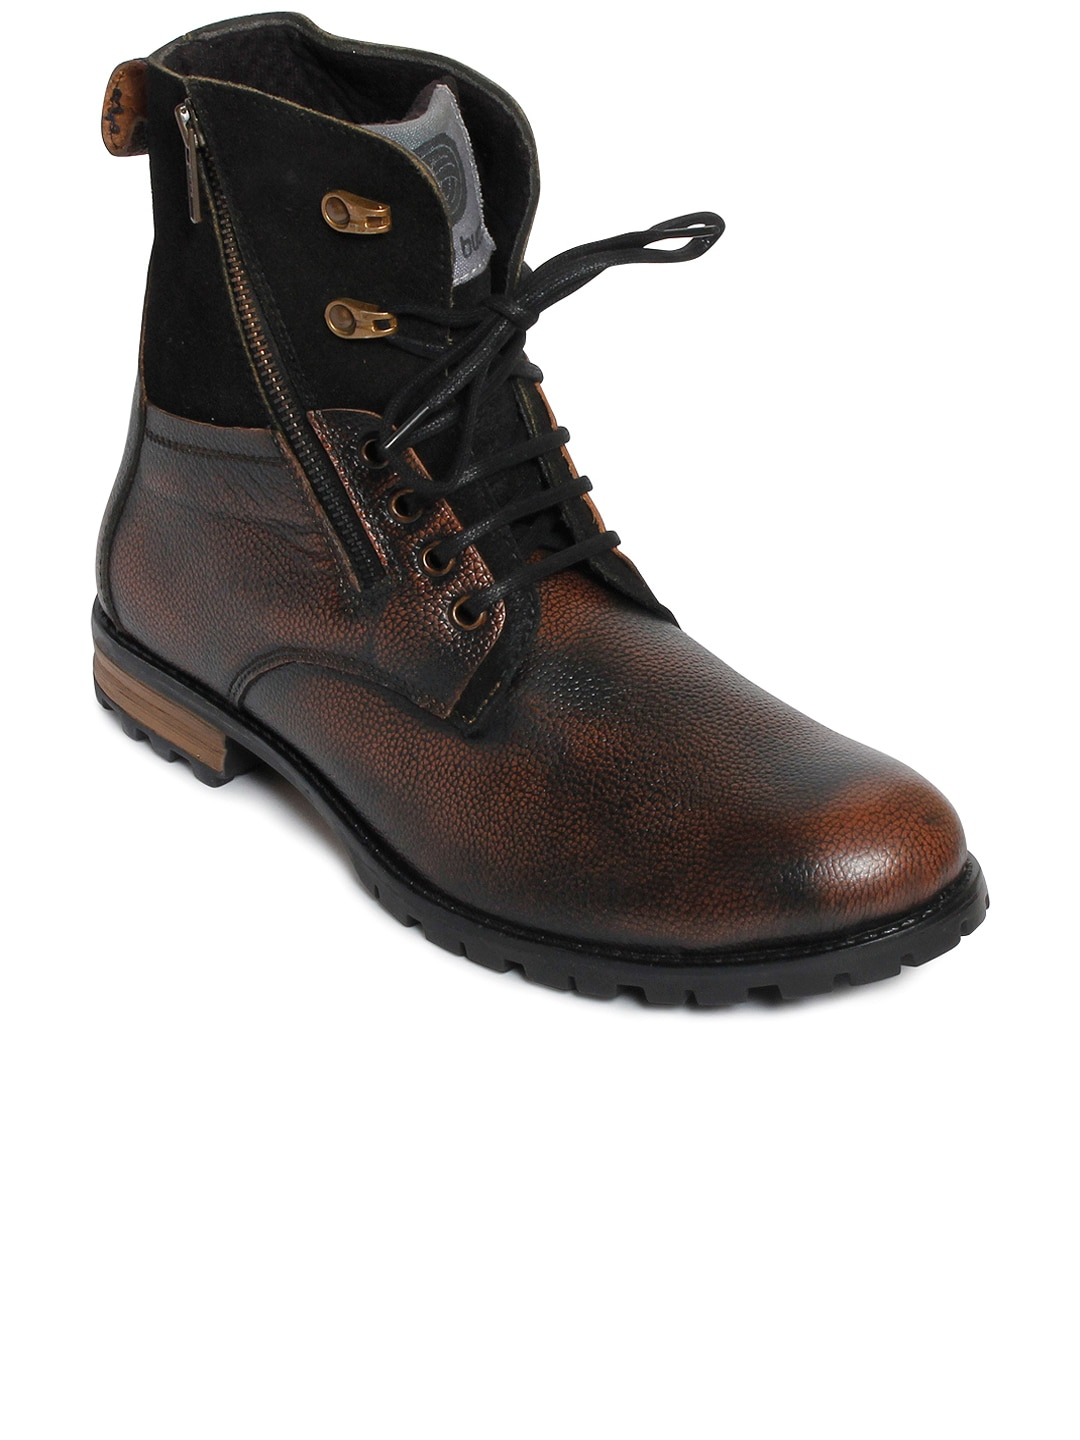 bacca bucci Men Brown Solid Leather High-Top Flat Boots image